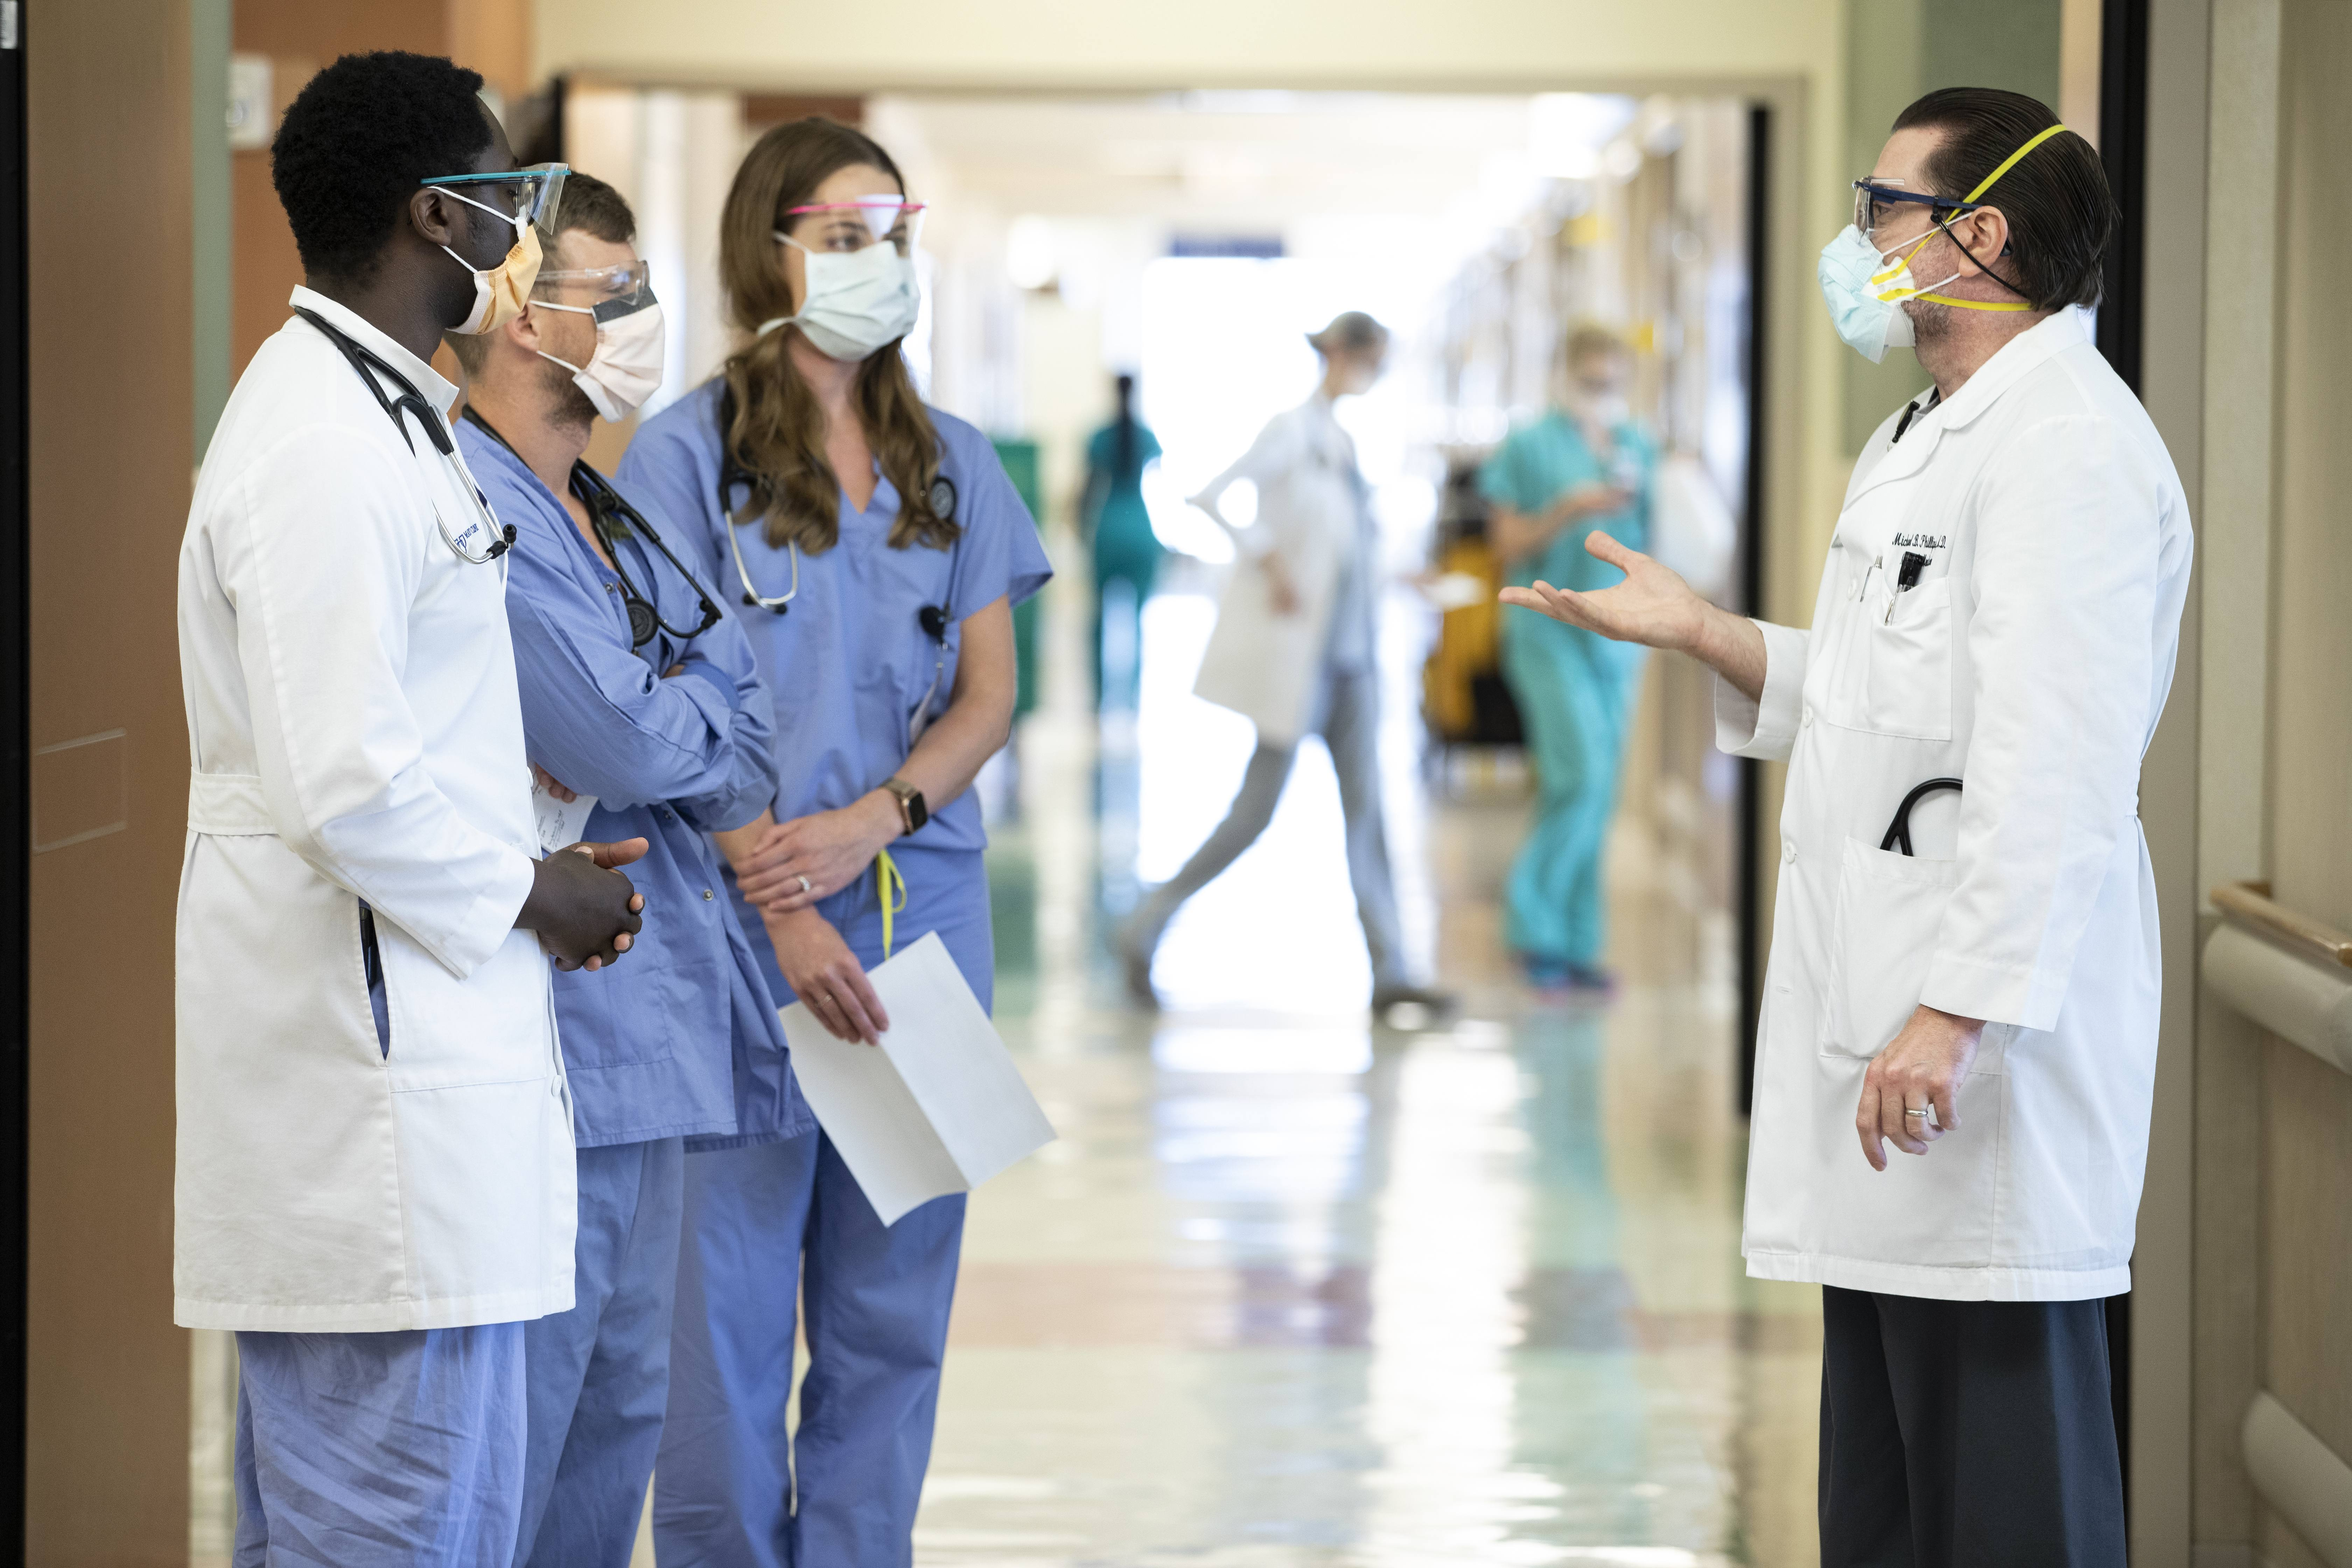 Mayo Clinic medical personnel in scrubs, white jackets and protective face masks in a hospital corridor having a conversation. 2 in blue scrubs, 2 in white coats, other staff passing in background.